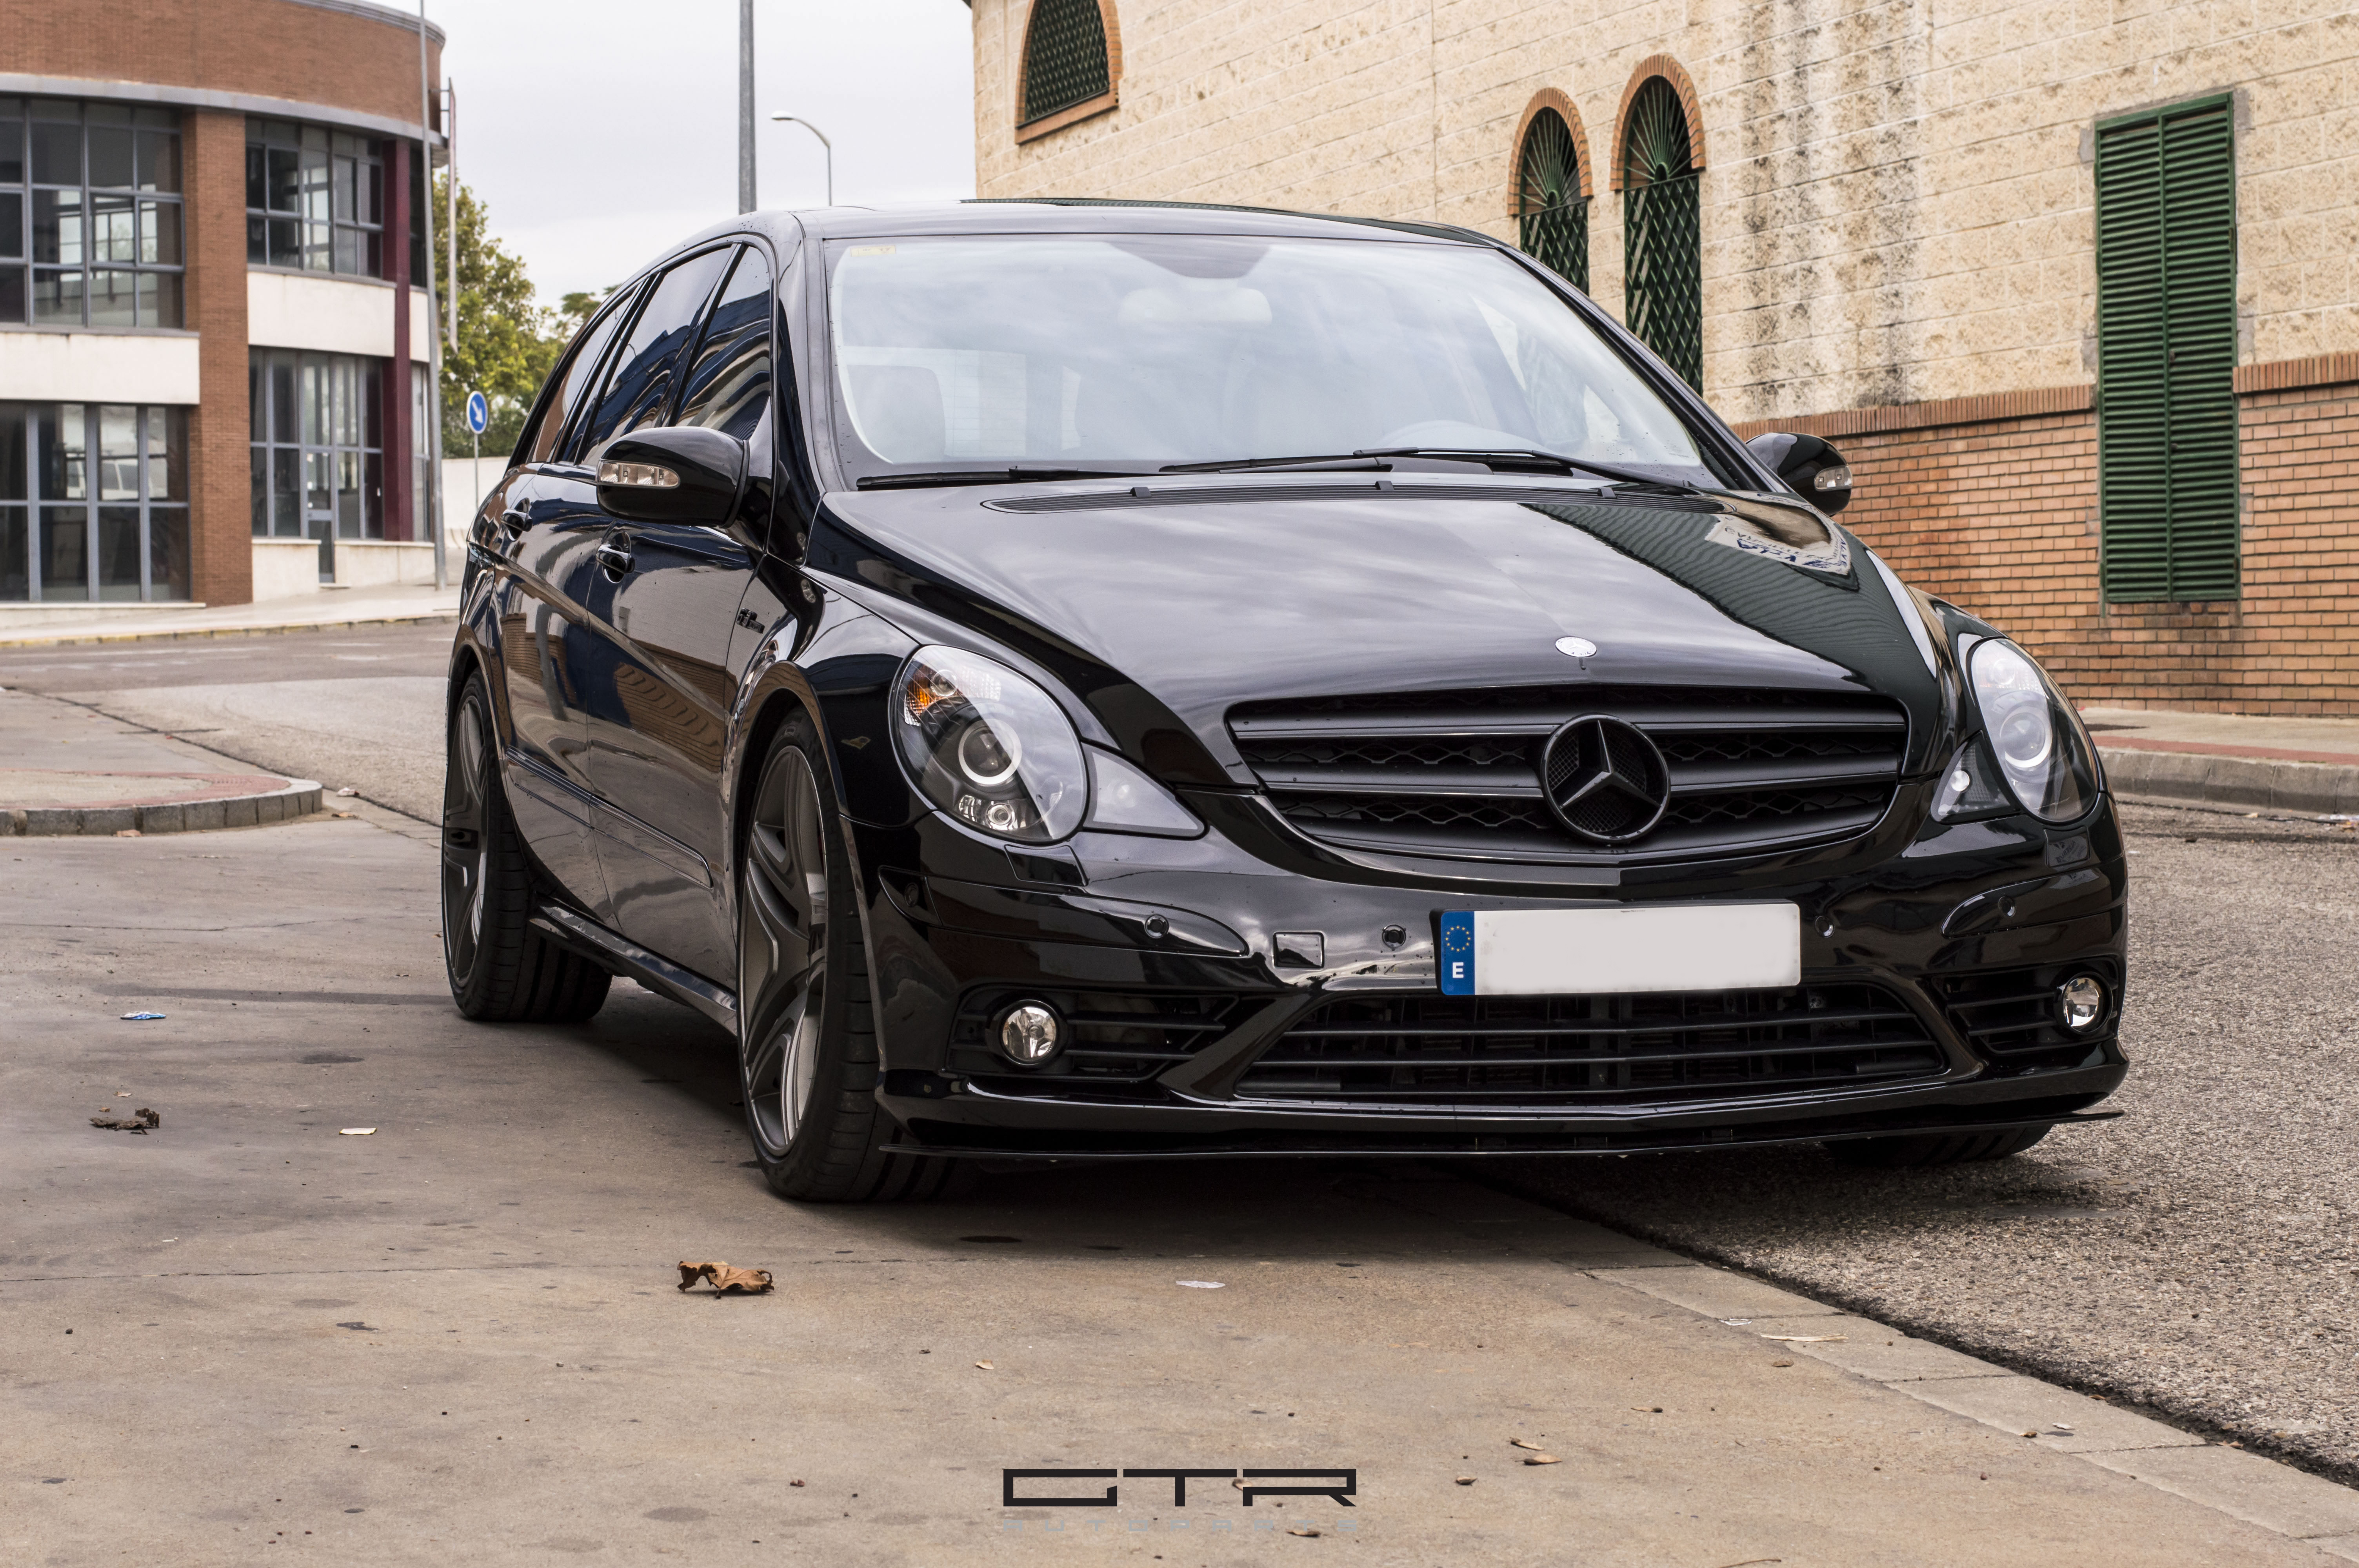 Mercedes Benz r63 Amg By GTRAutoparts